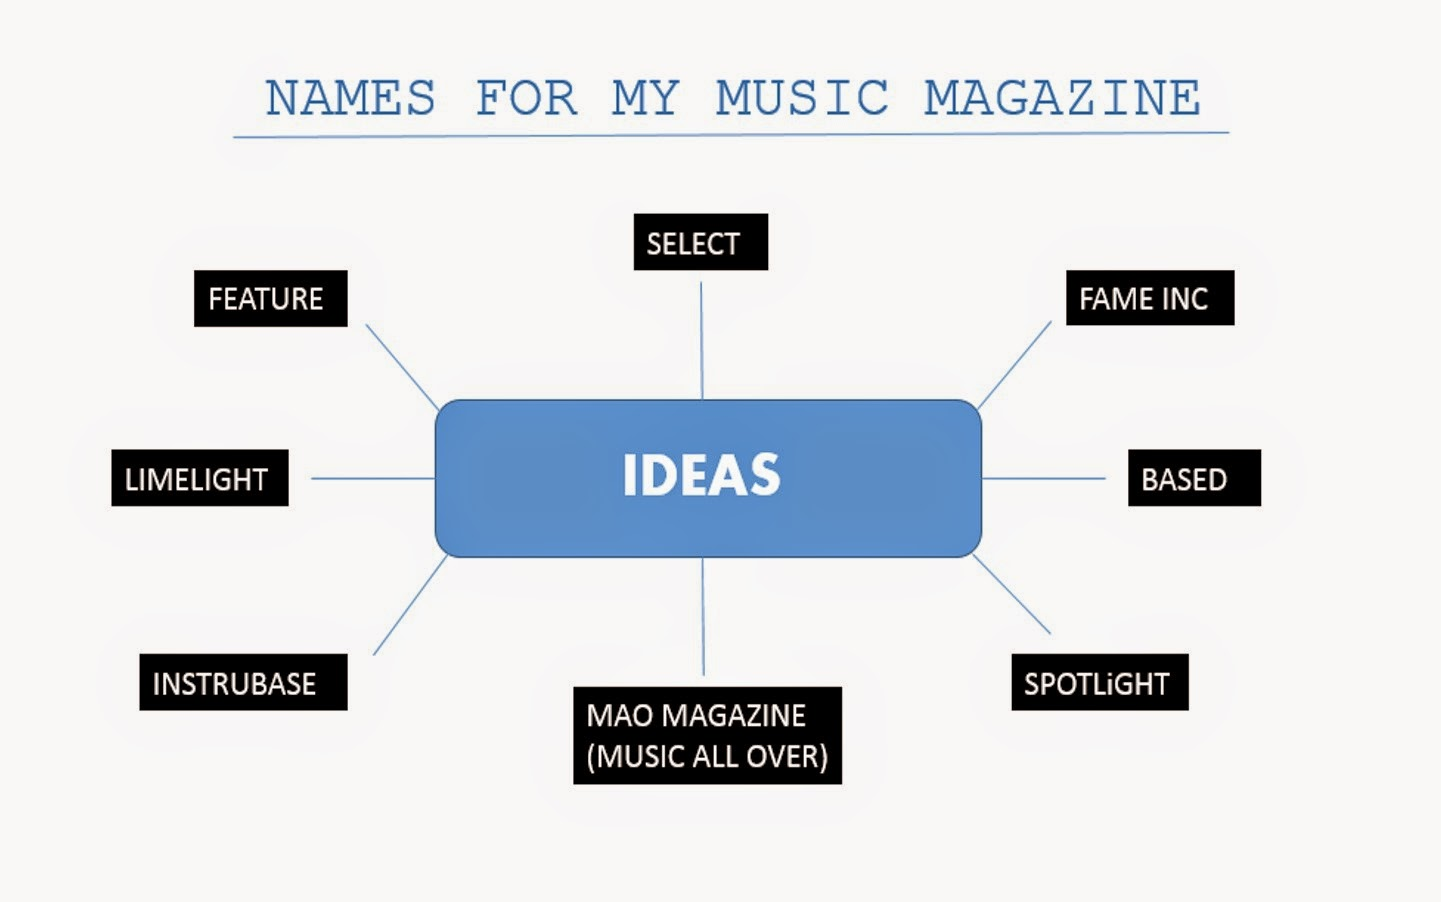 Evin Bezginsoy As Media Studies Blog Music Magazine Names And